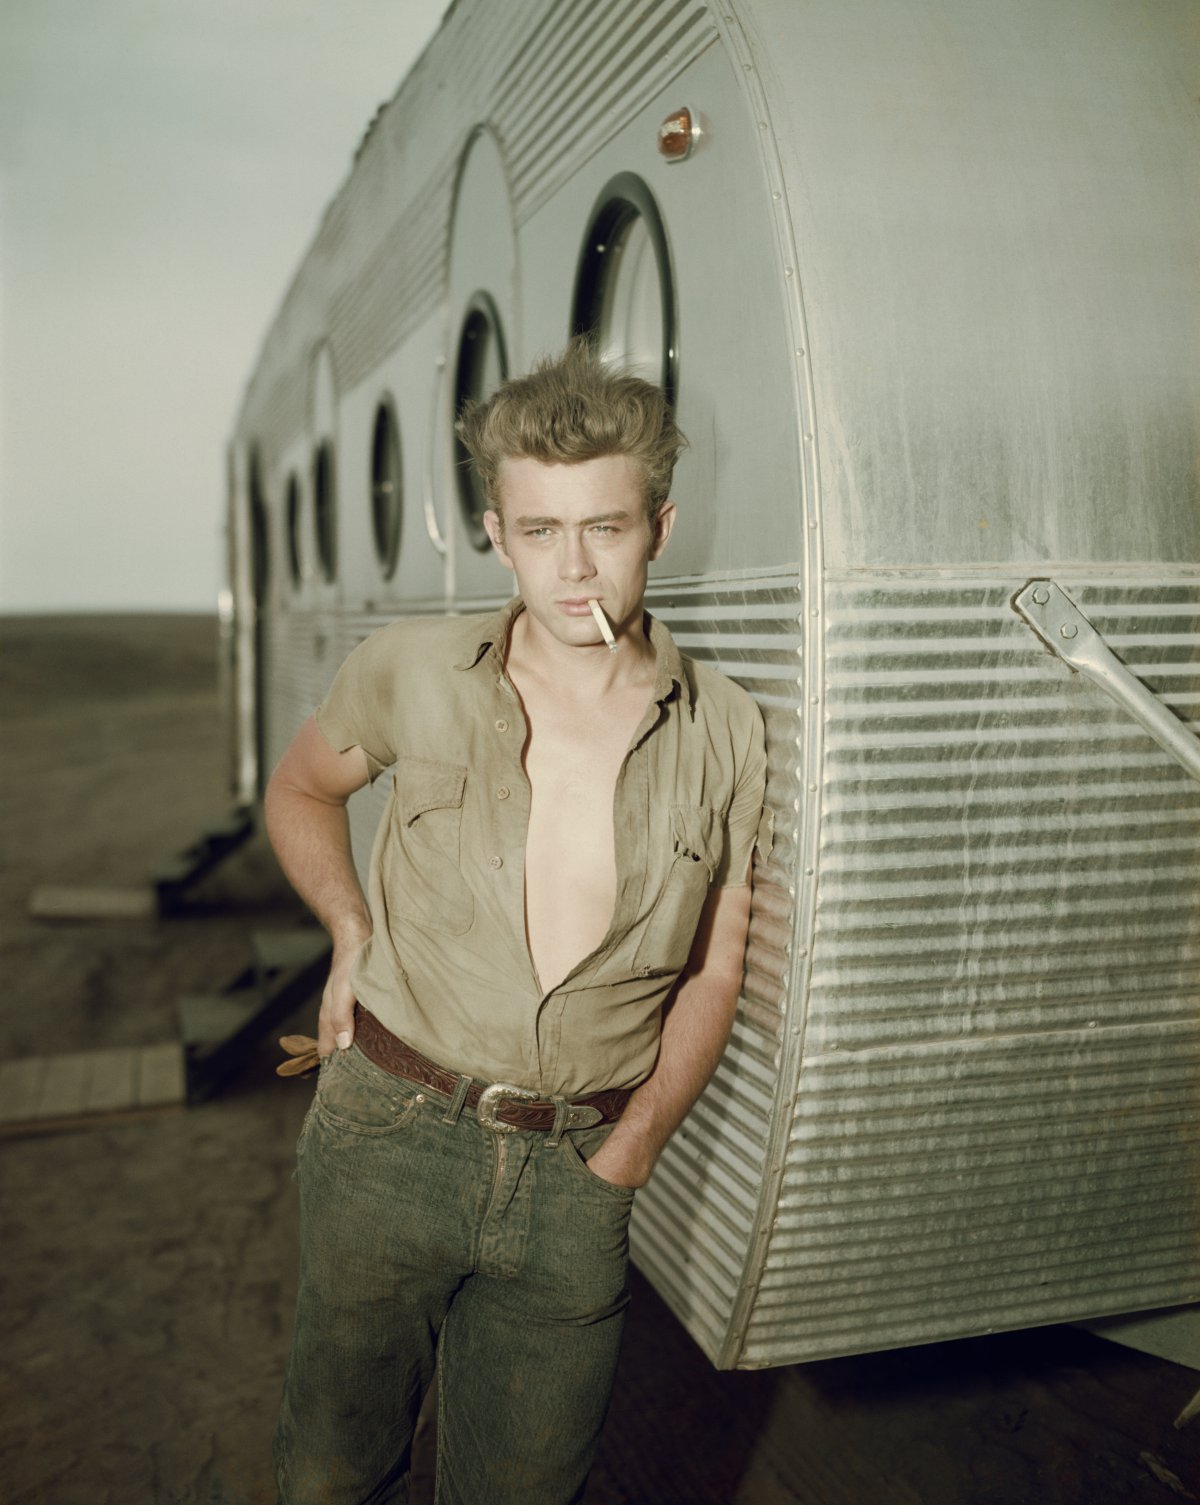 James Dean (1931 – 1955) / Accidente de tráfico